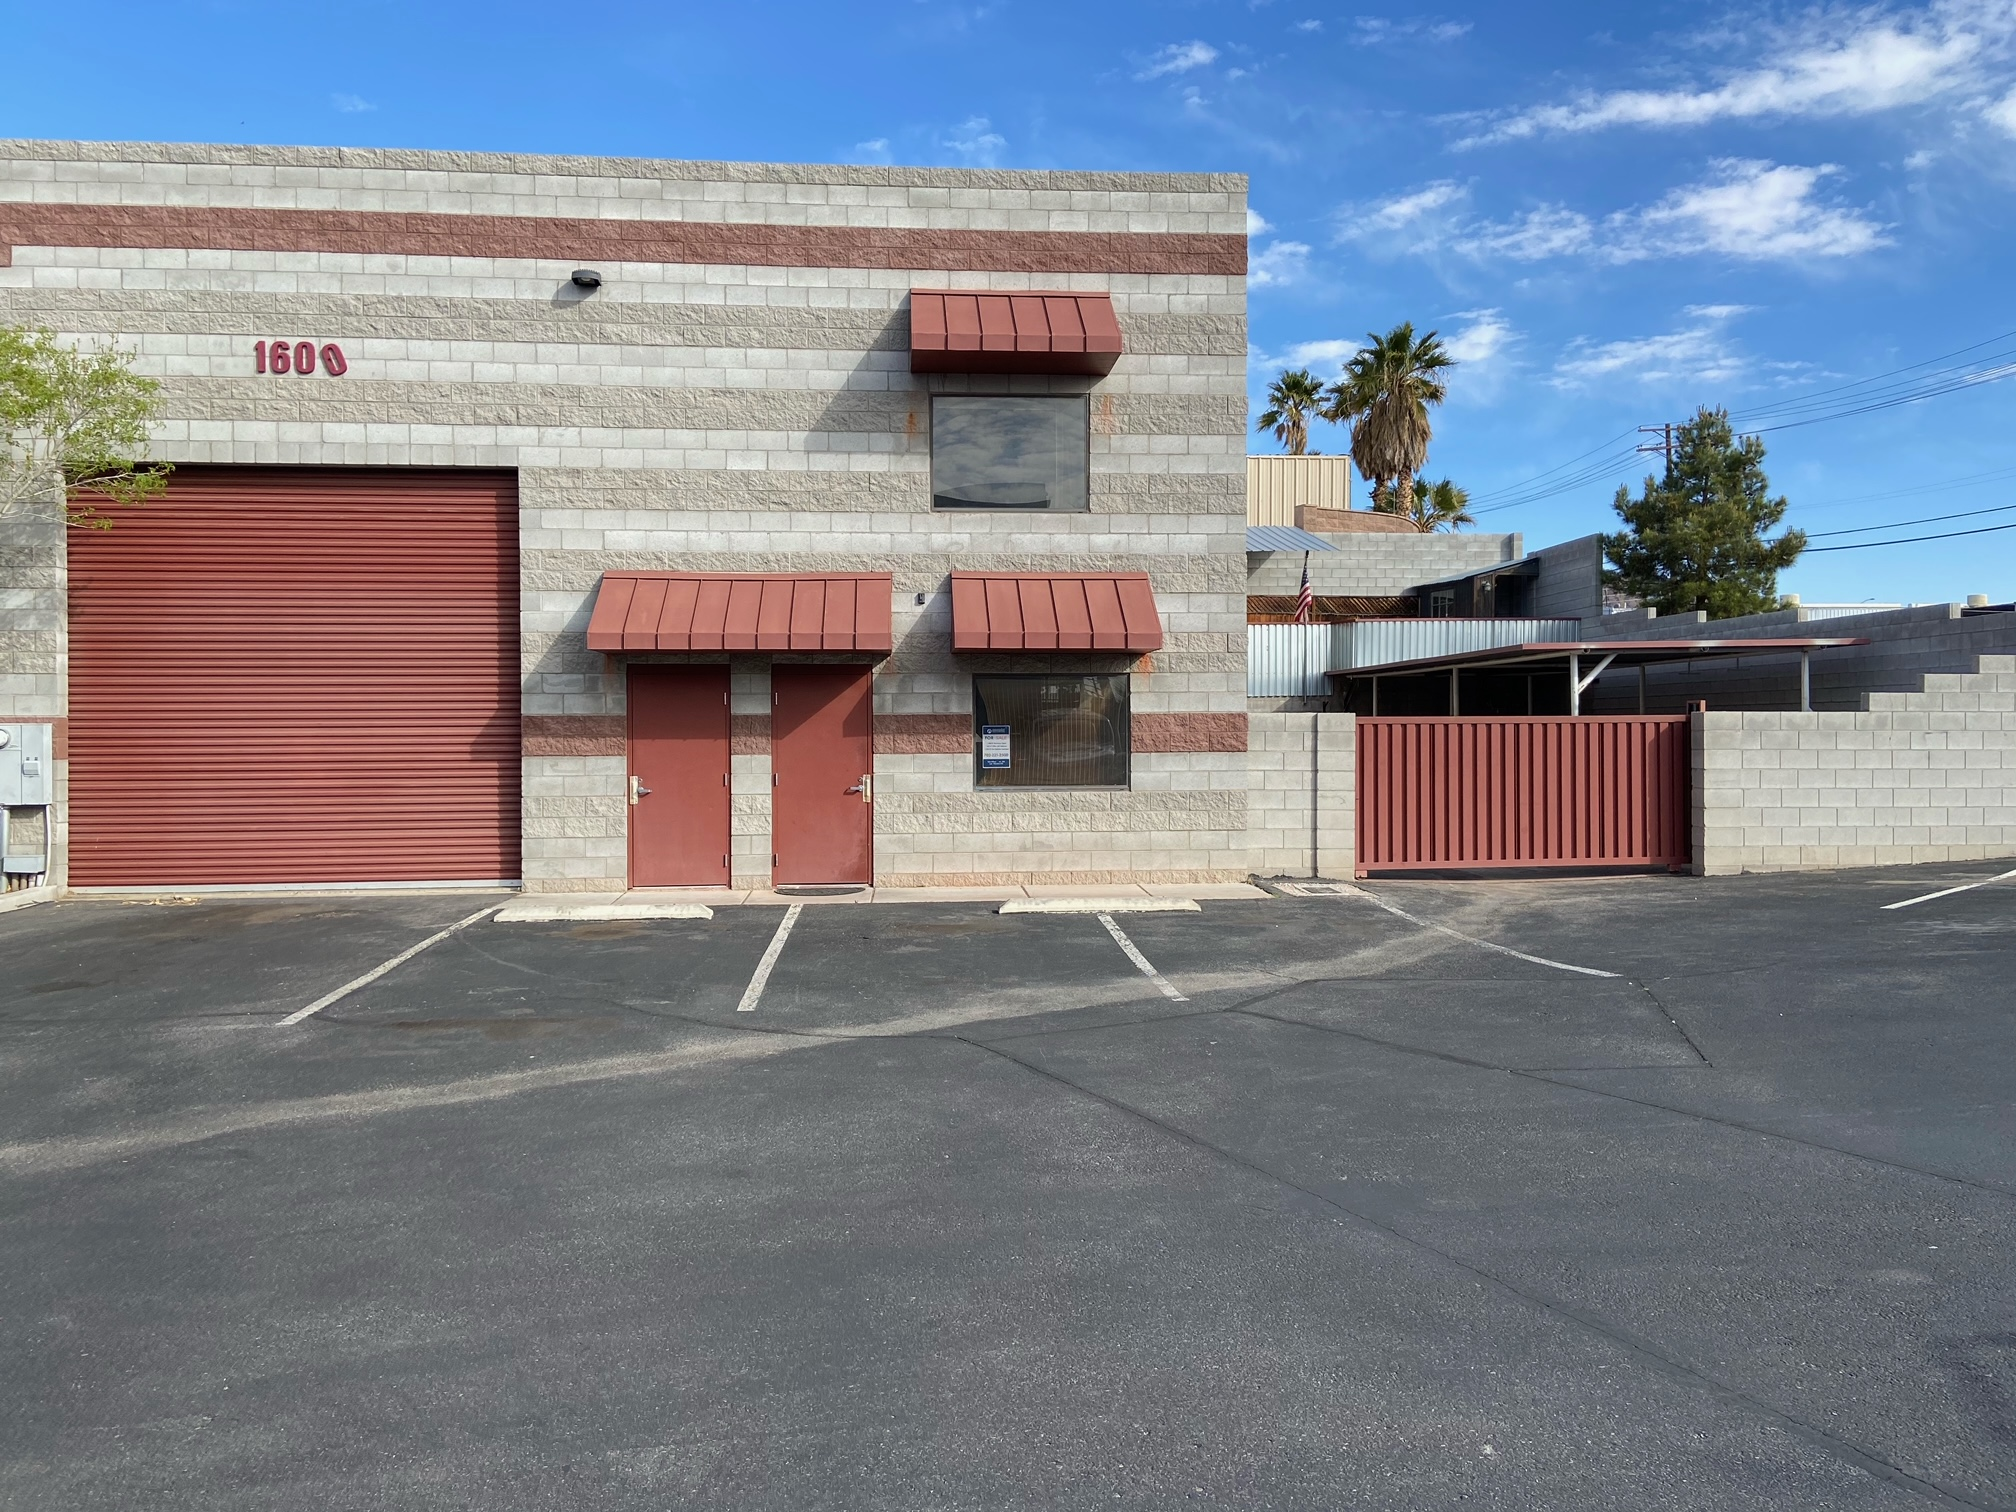 1600 Carse Drive – Live/Work Space Near Lake Mead